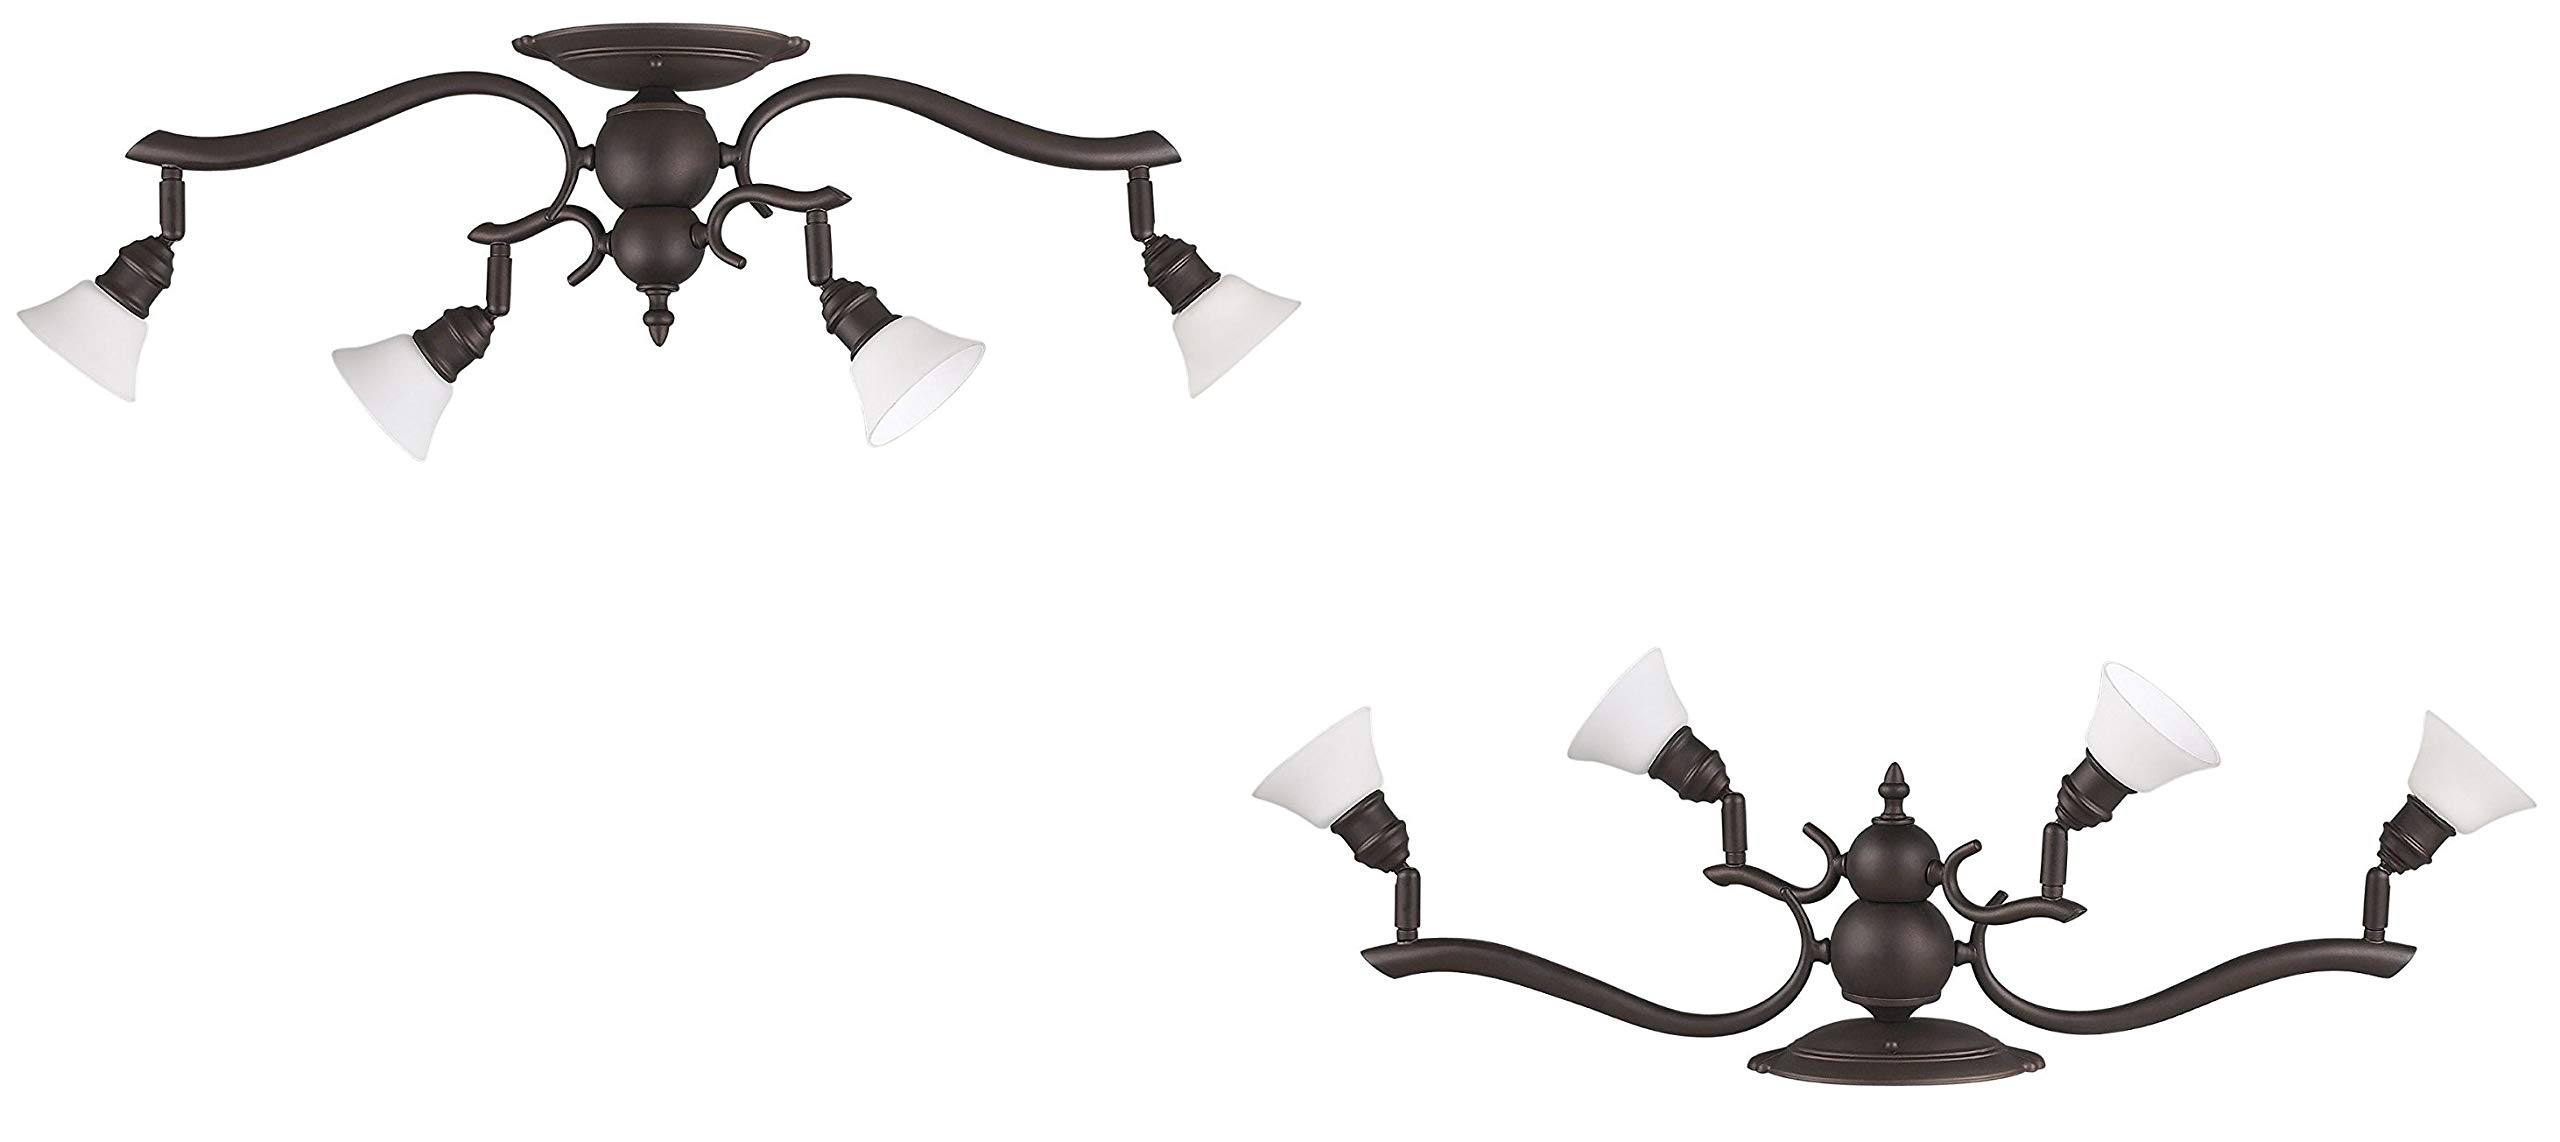 Canarm Addison 4-Light Dropped Track Lighting with Flat Opal Glass Shades, Oil Rubbed Bronze (4 Light -2 Pack)